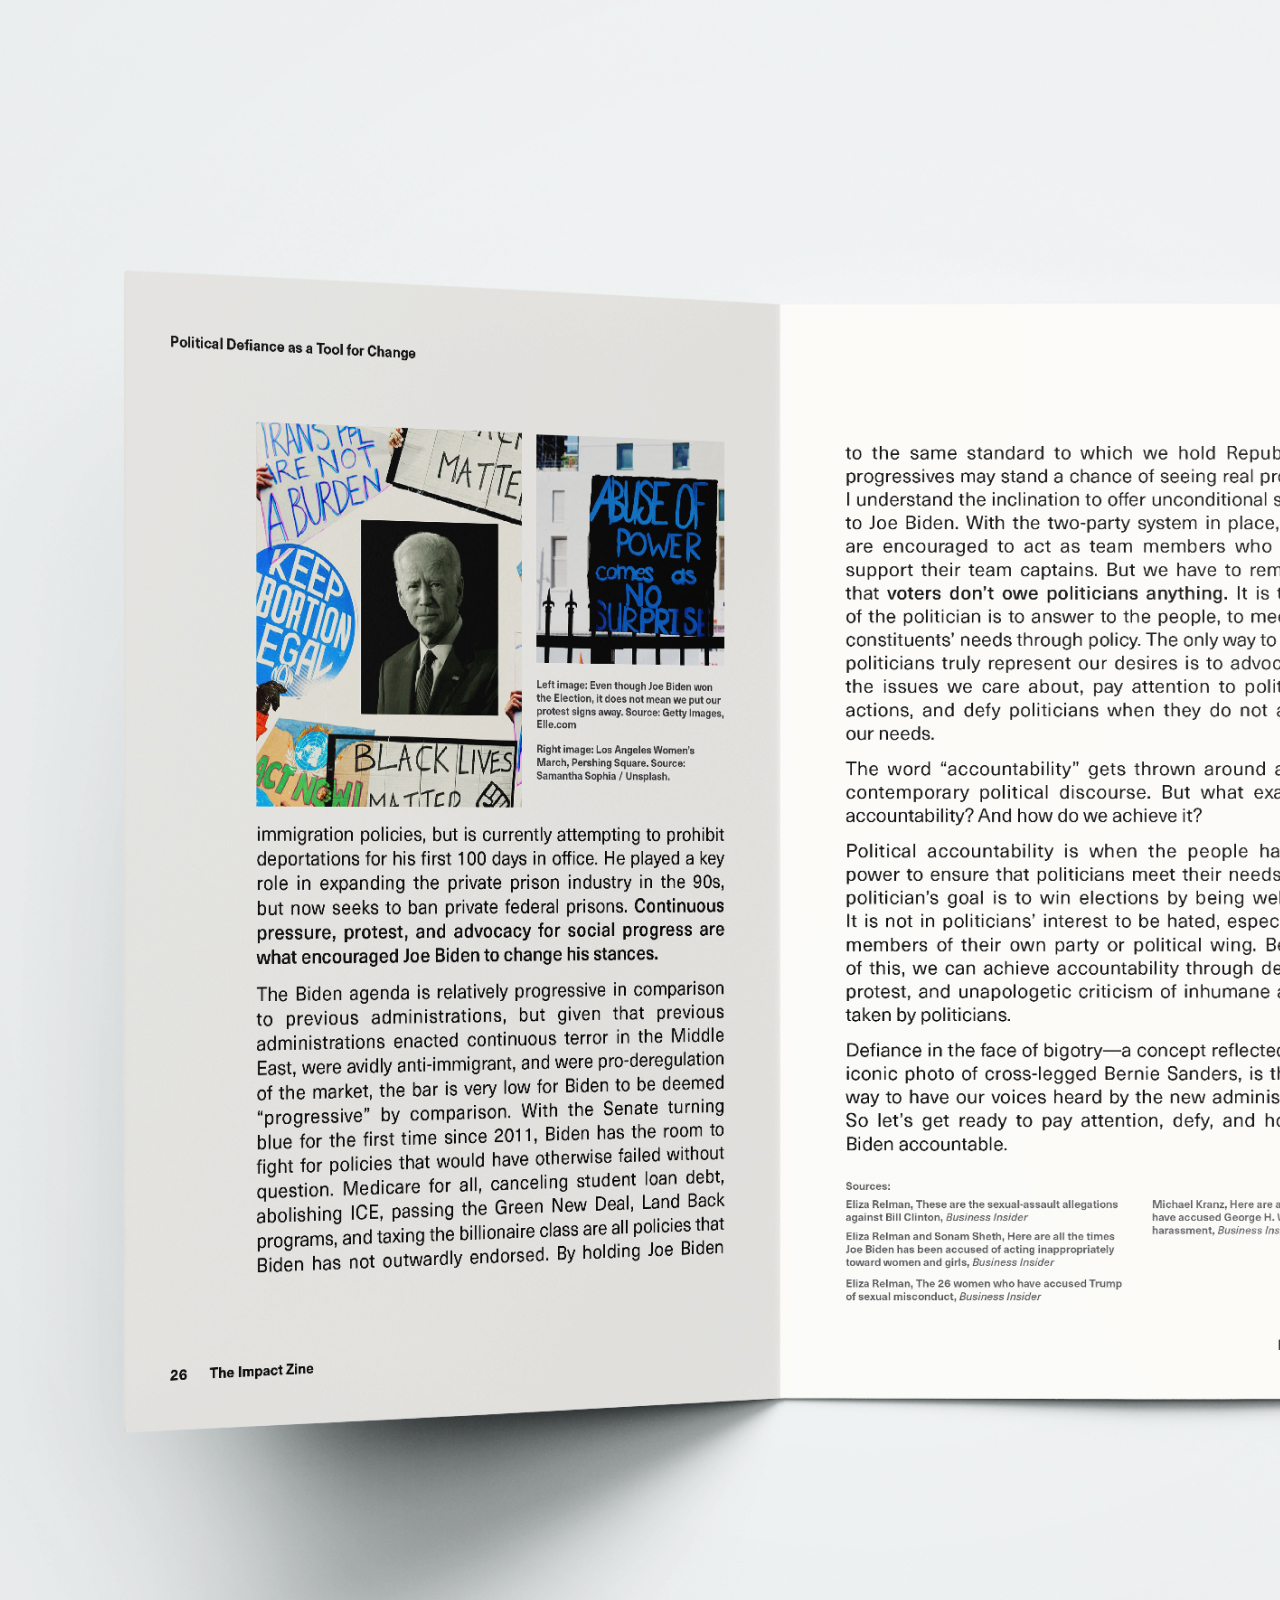 Interior spread showing content within the impact zine